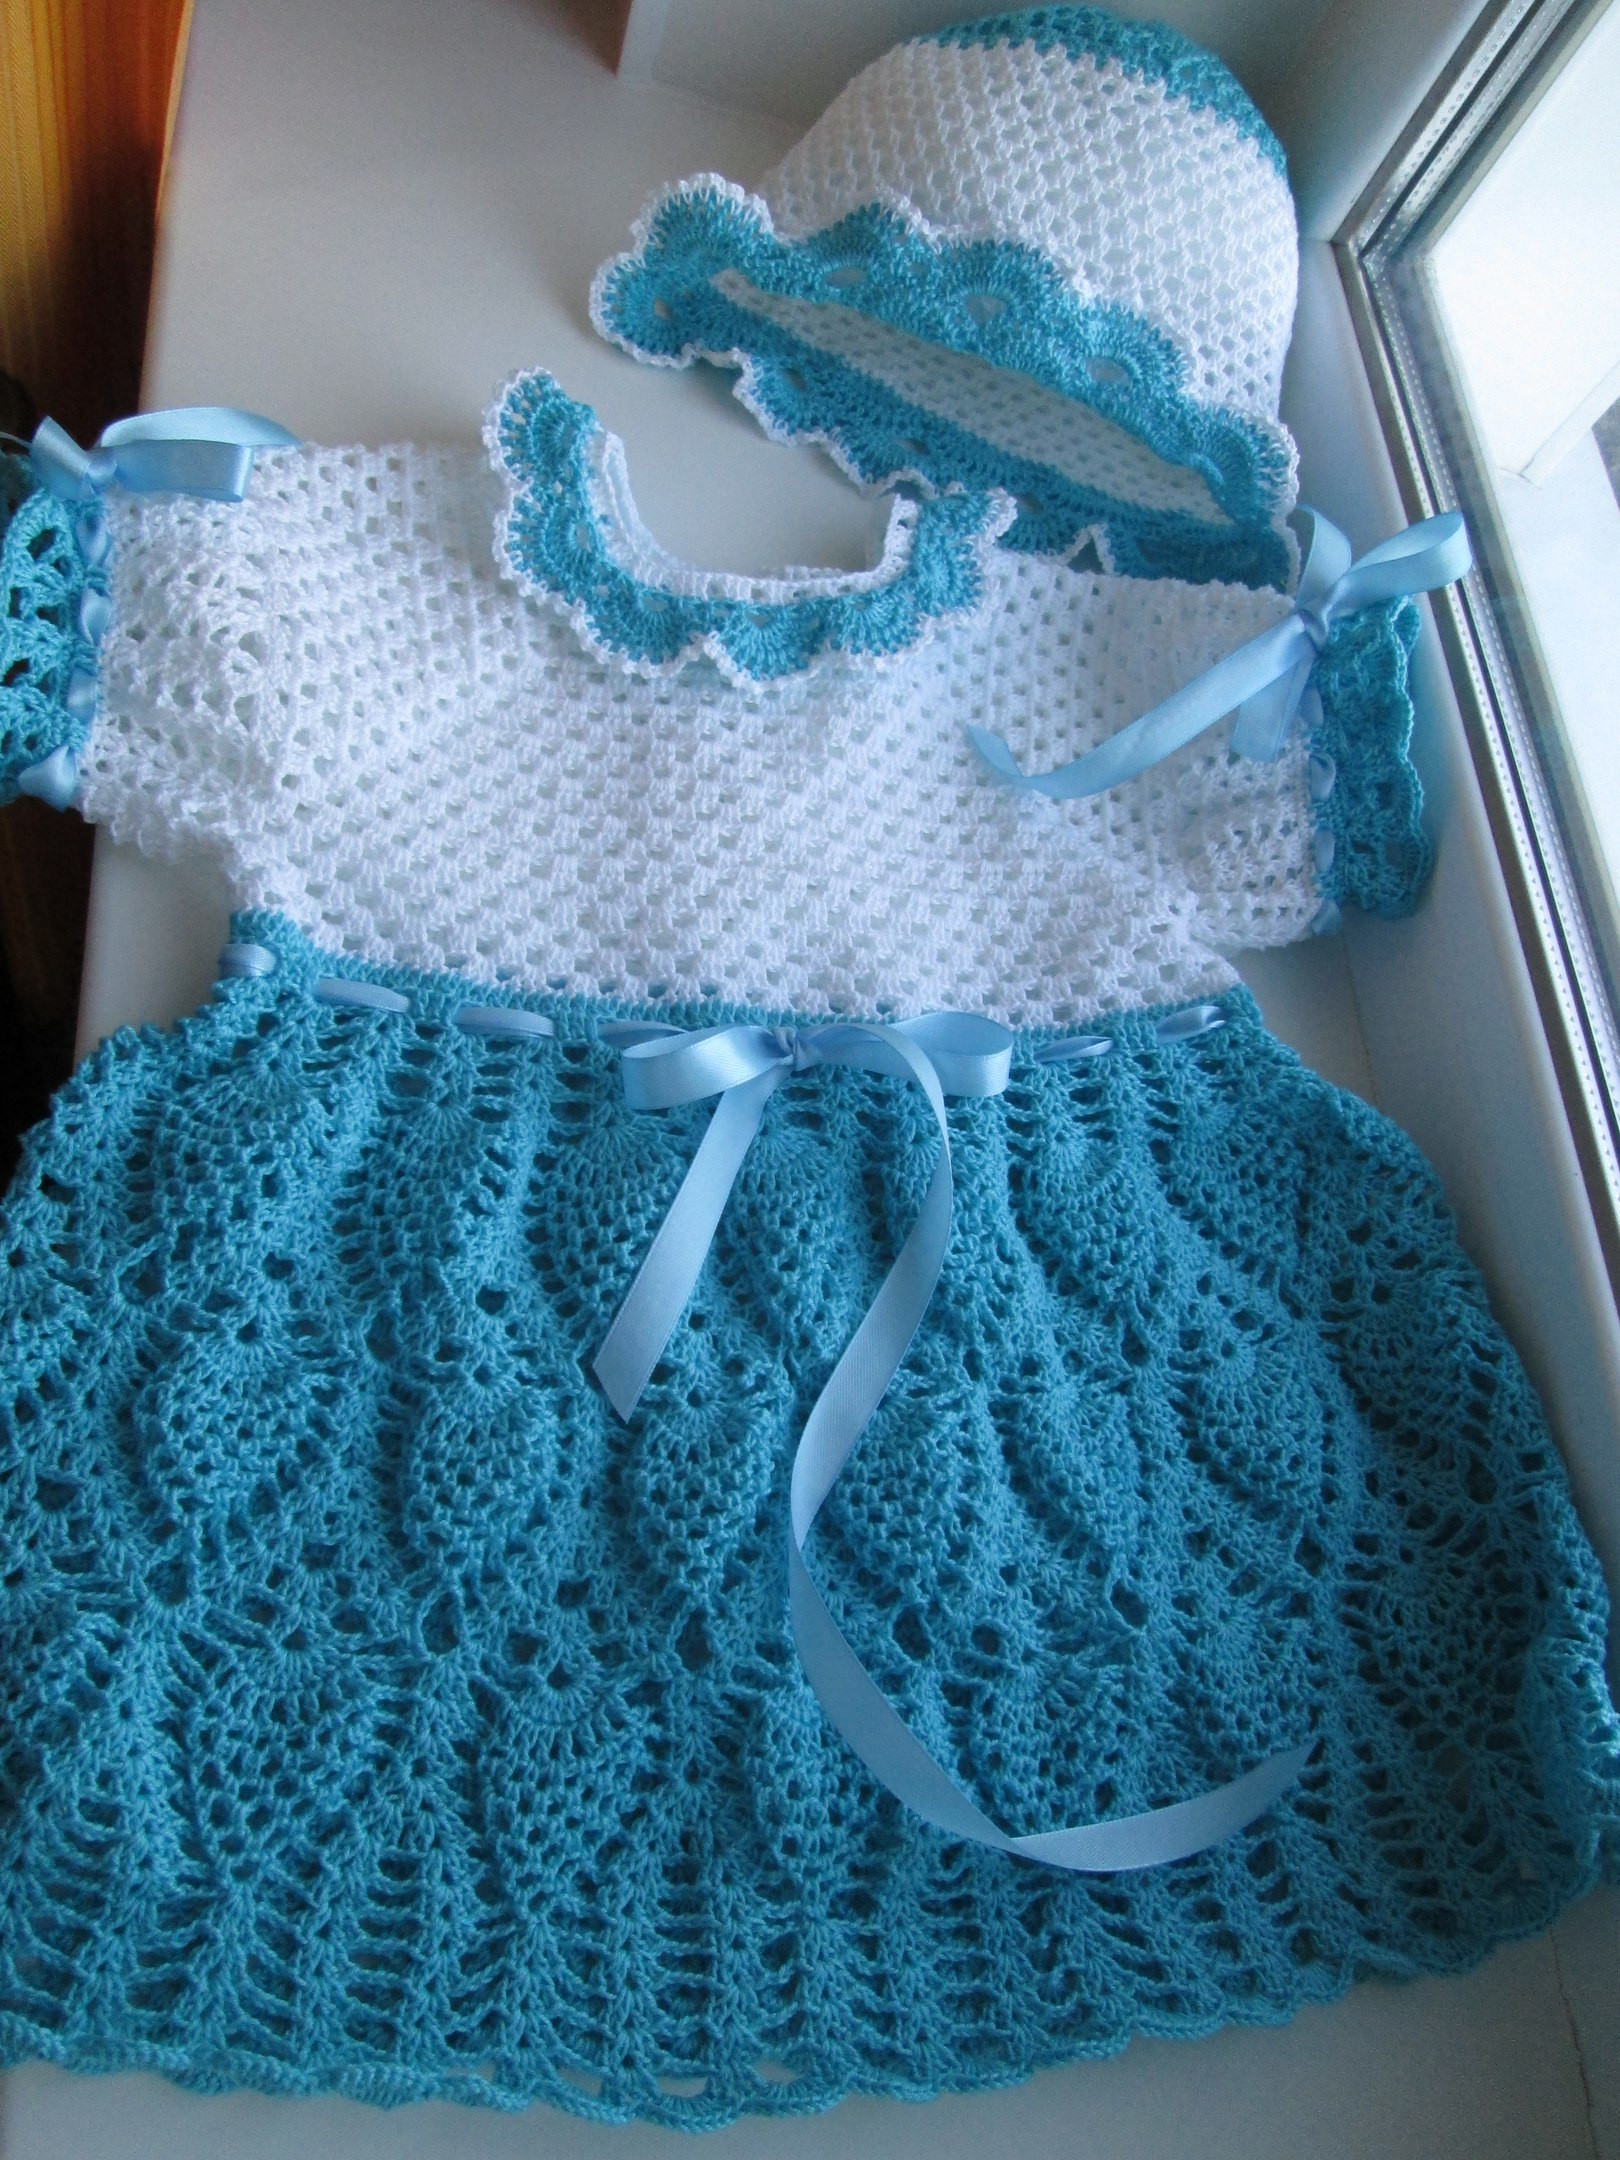 Baby Crochet Patterns Awesome Crochet Baby Clothes Of Fresh 41 Ideas Baby Crochet Patterns